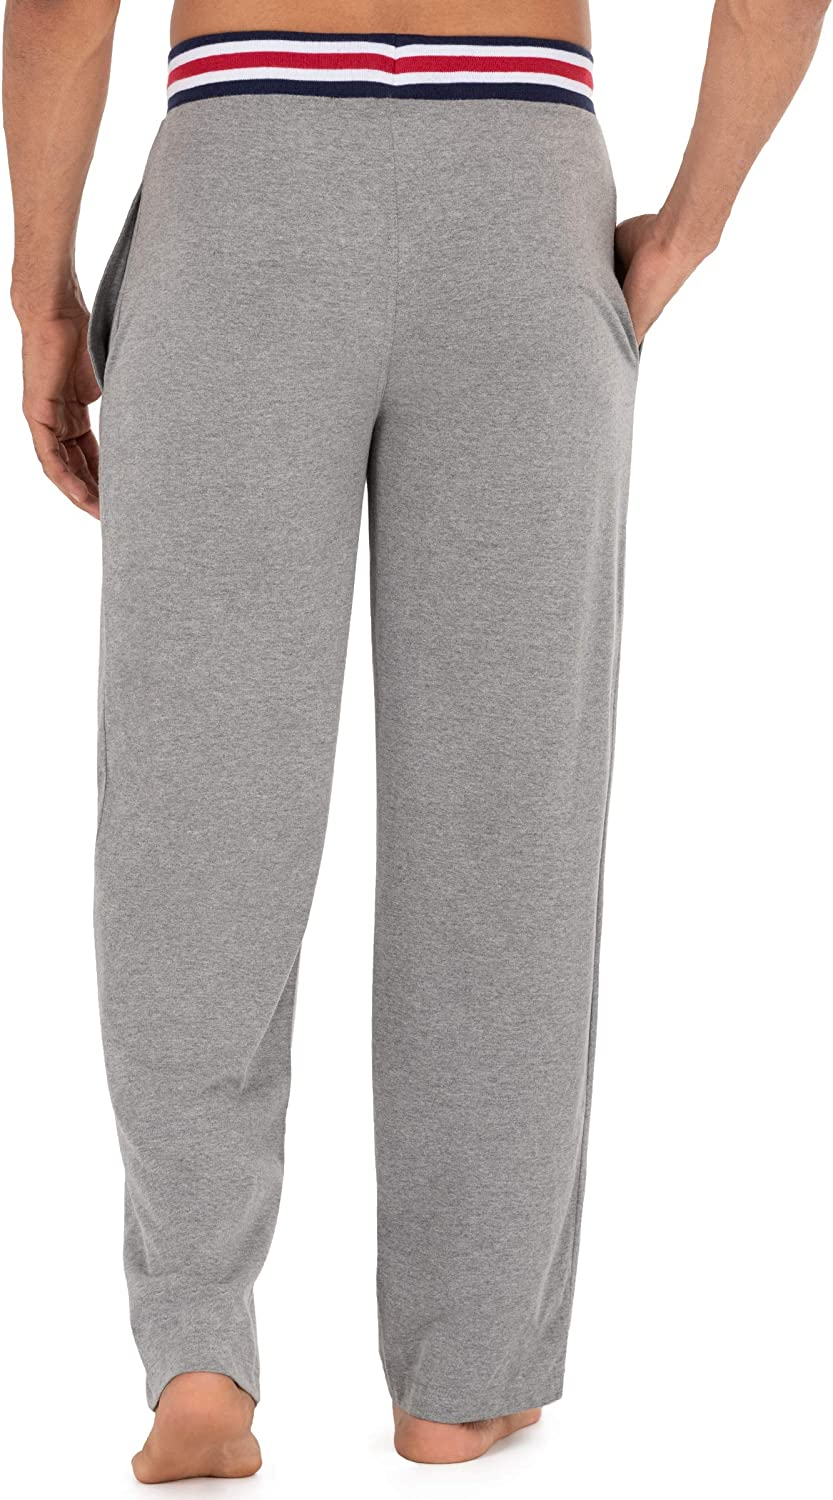 Izod Mens Poly Sueded Jersey Knit Pant with Striped Waistband Pajama Bottom